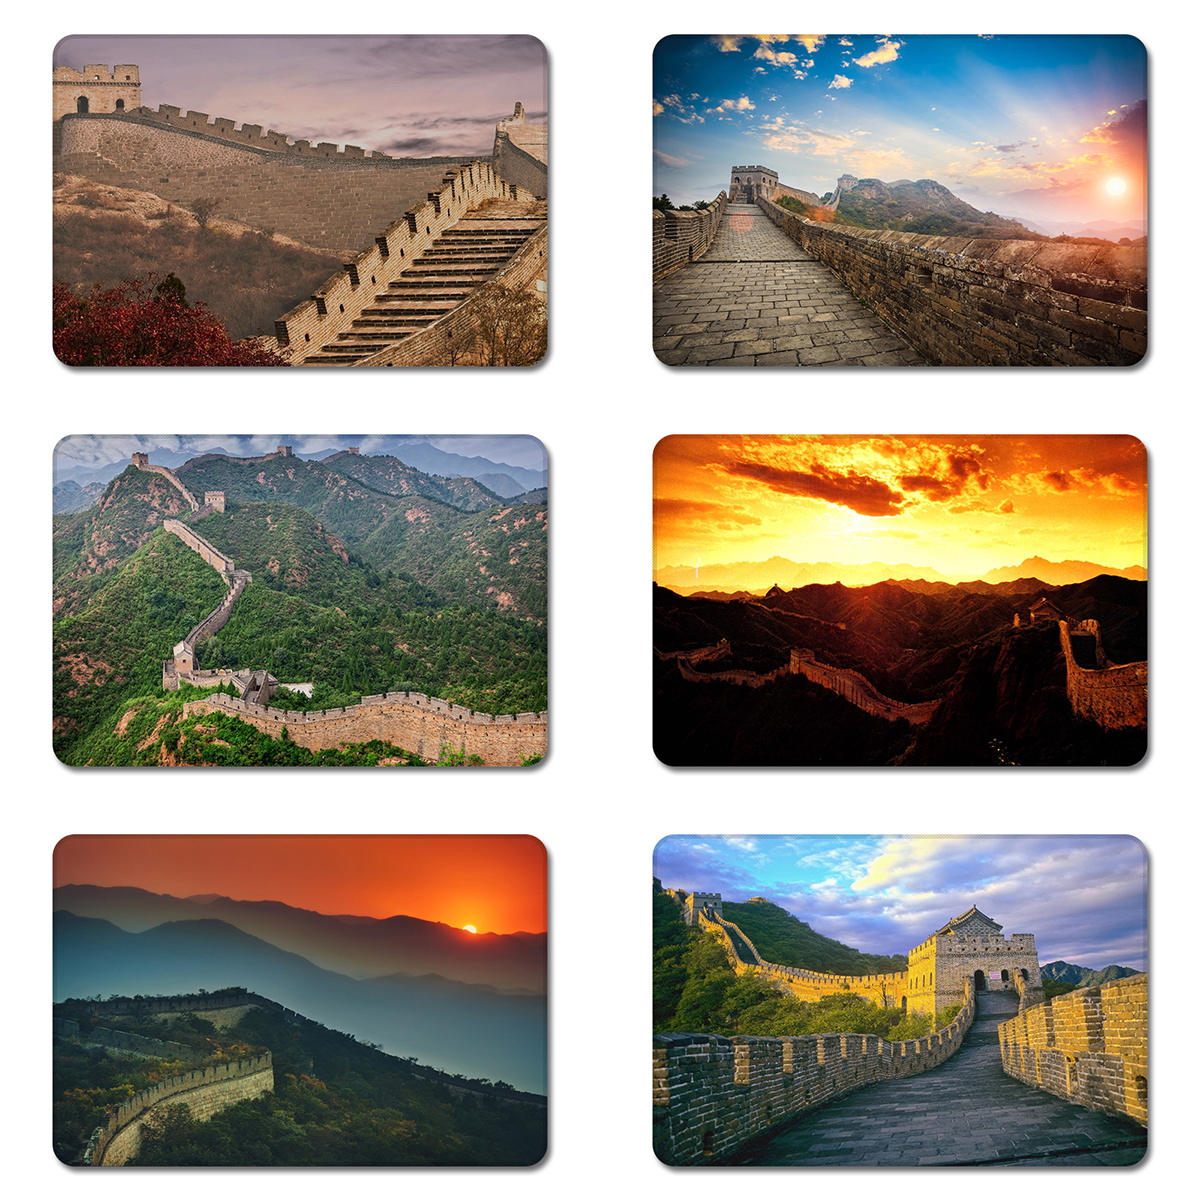 The Great Wall Of China Sunshine Sunset Cool Designs Nature Rubber Table Mouse Pad Laptop Computer Enclosure Mousepad Mat